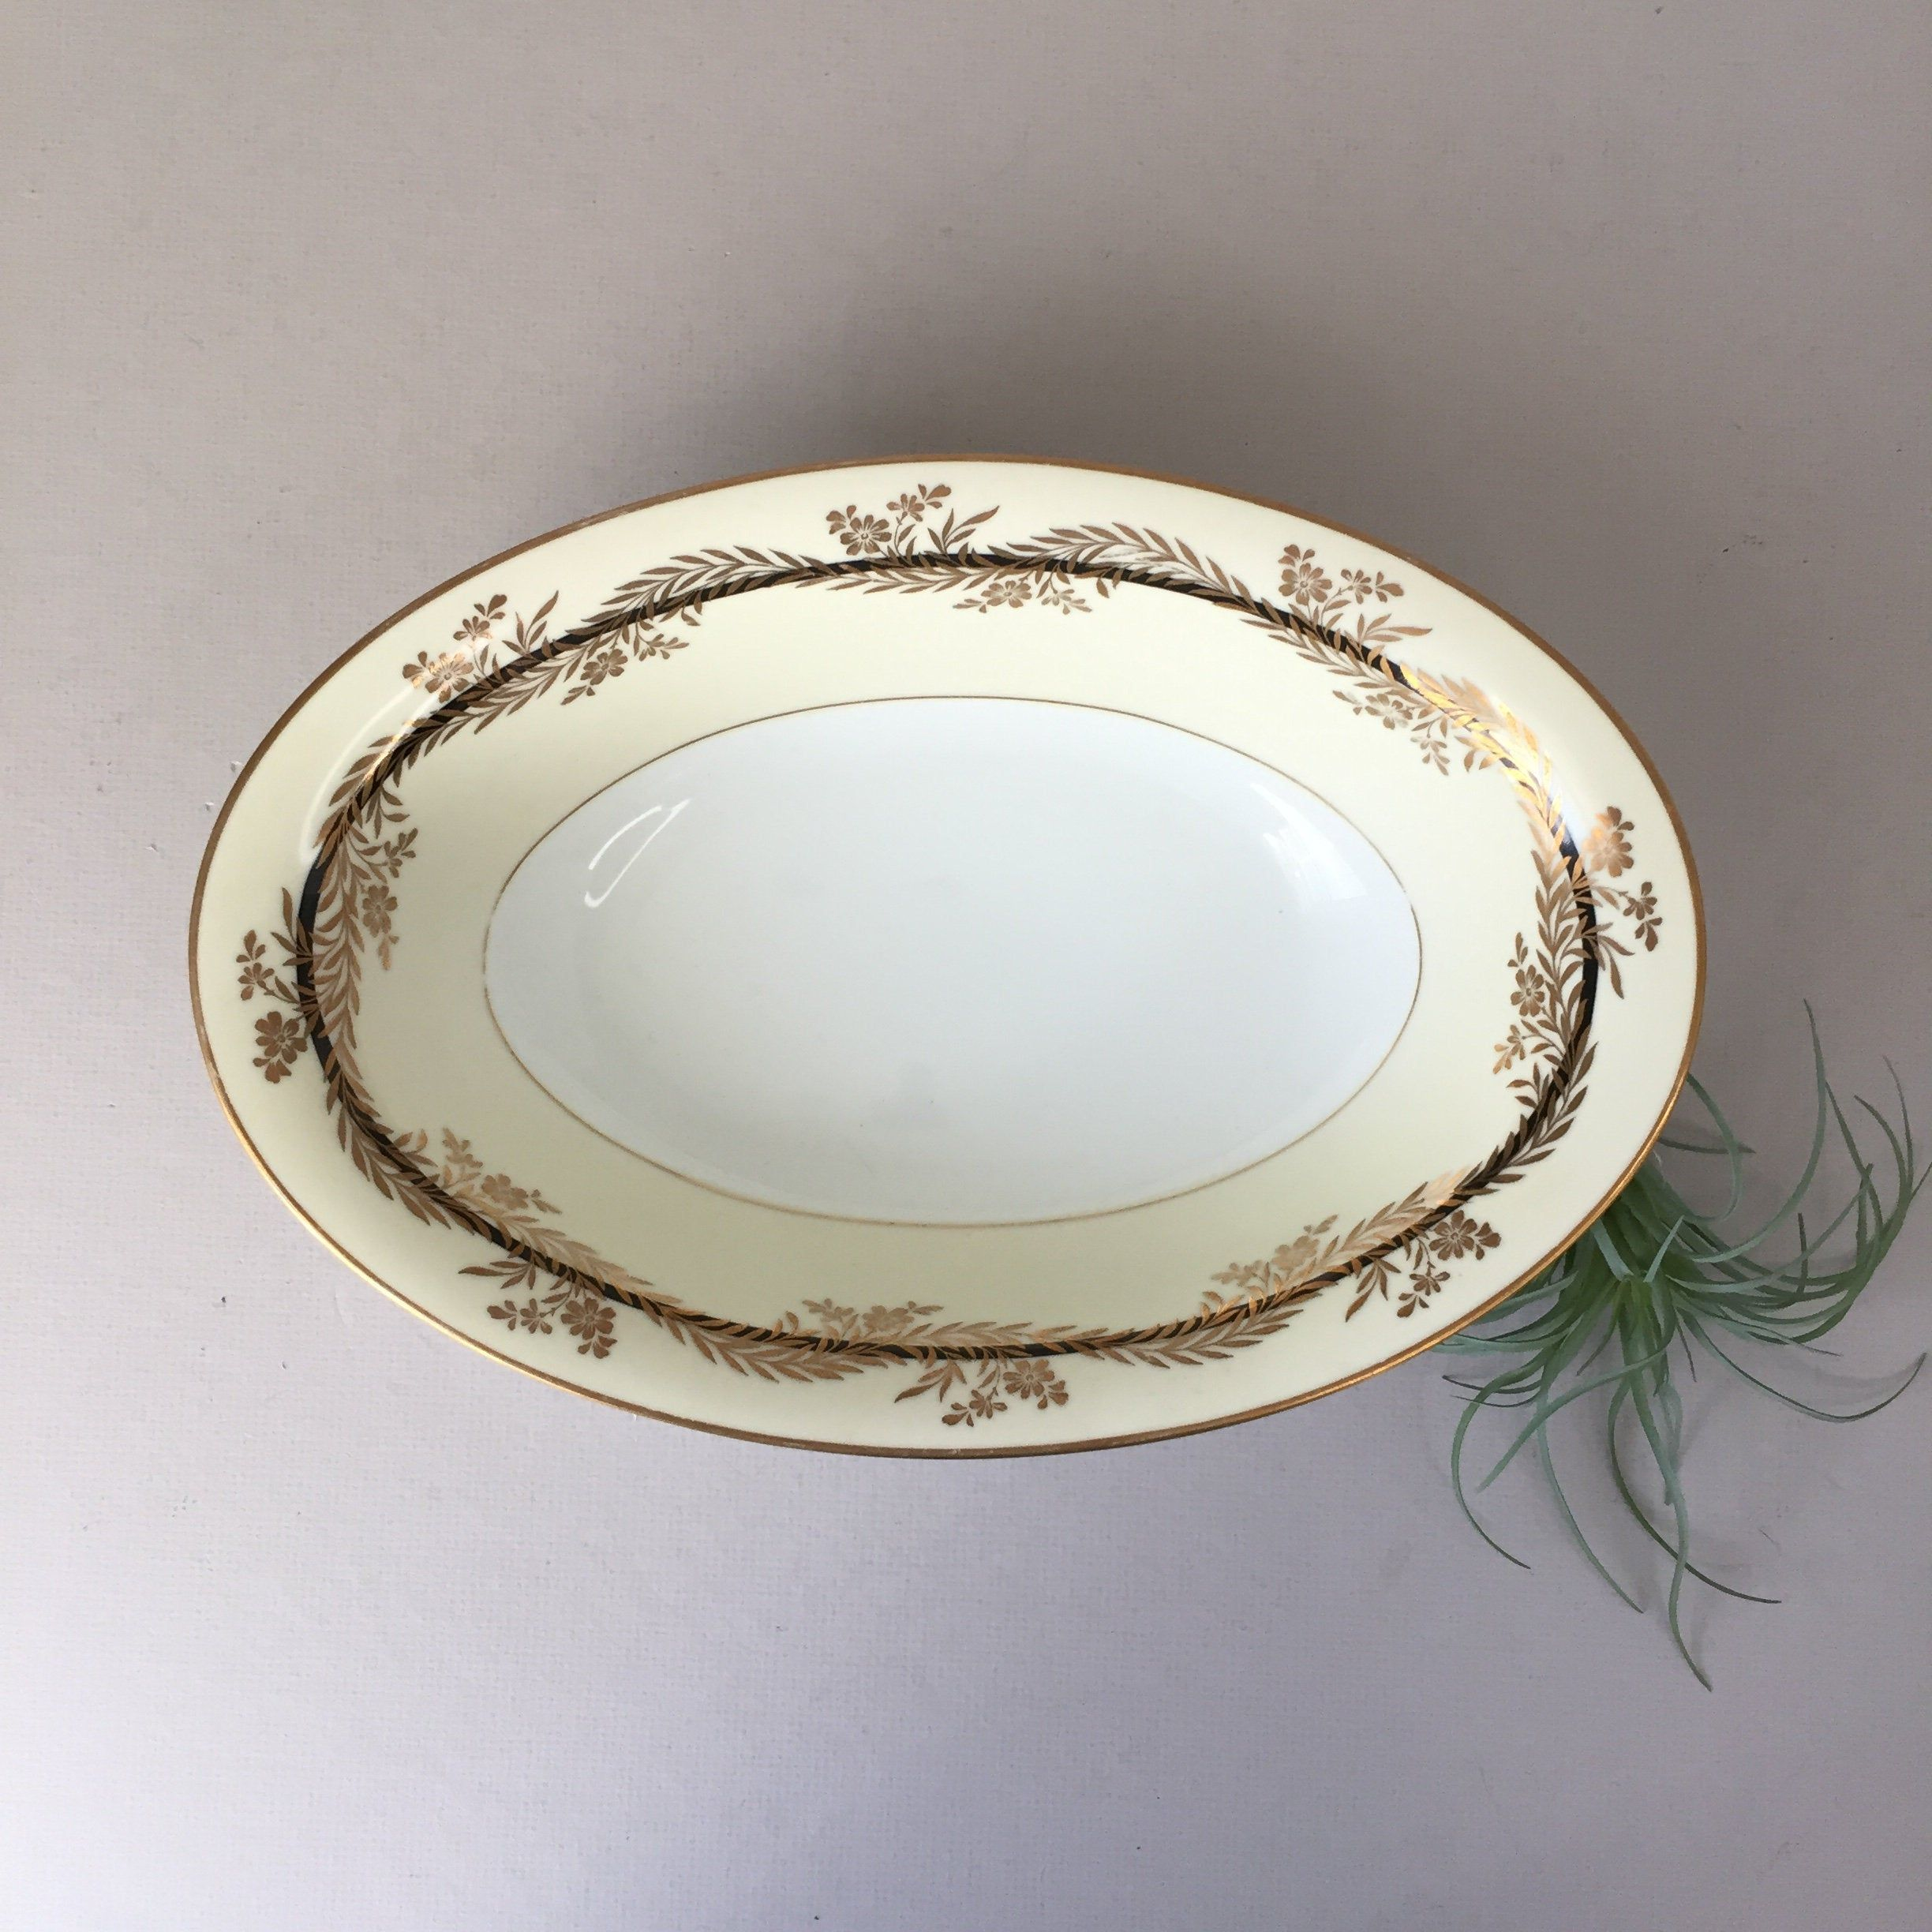 Do you know the maker or pattern name? Made in Japan... Vintage Round Vegetable Bowl with Lid